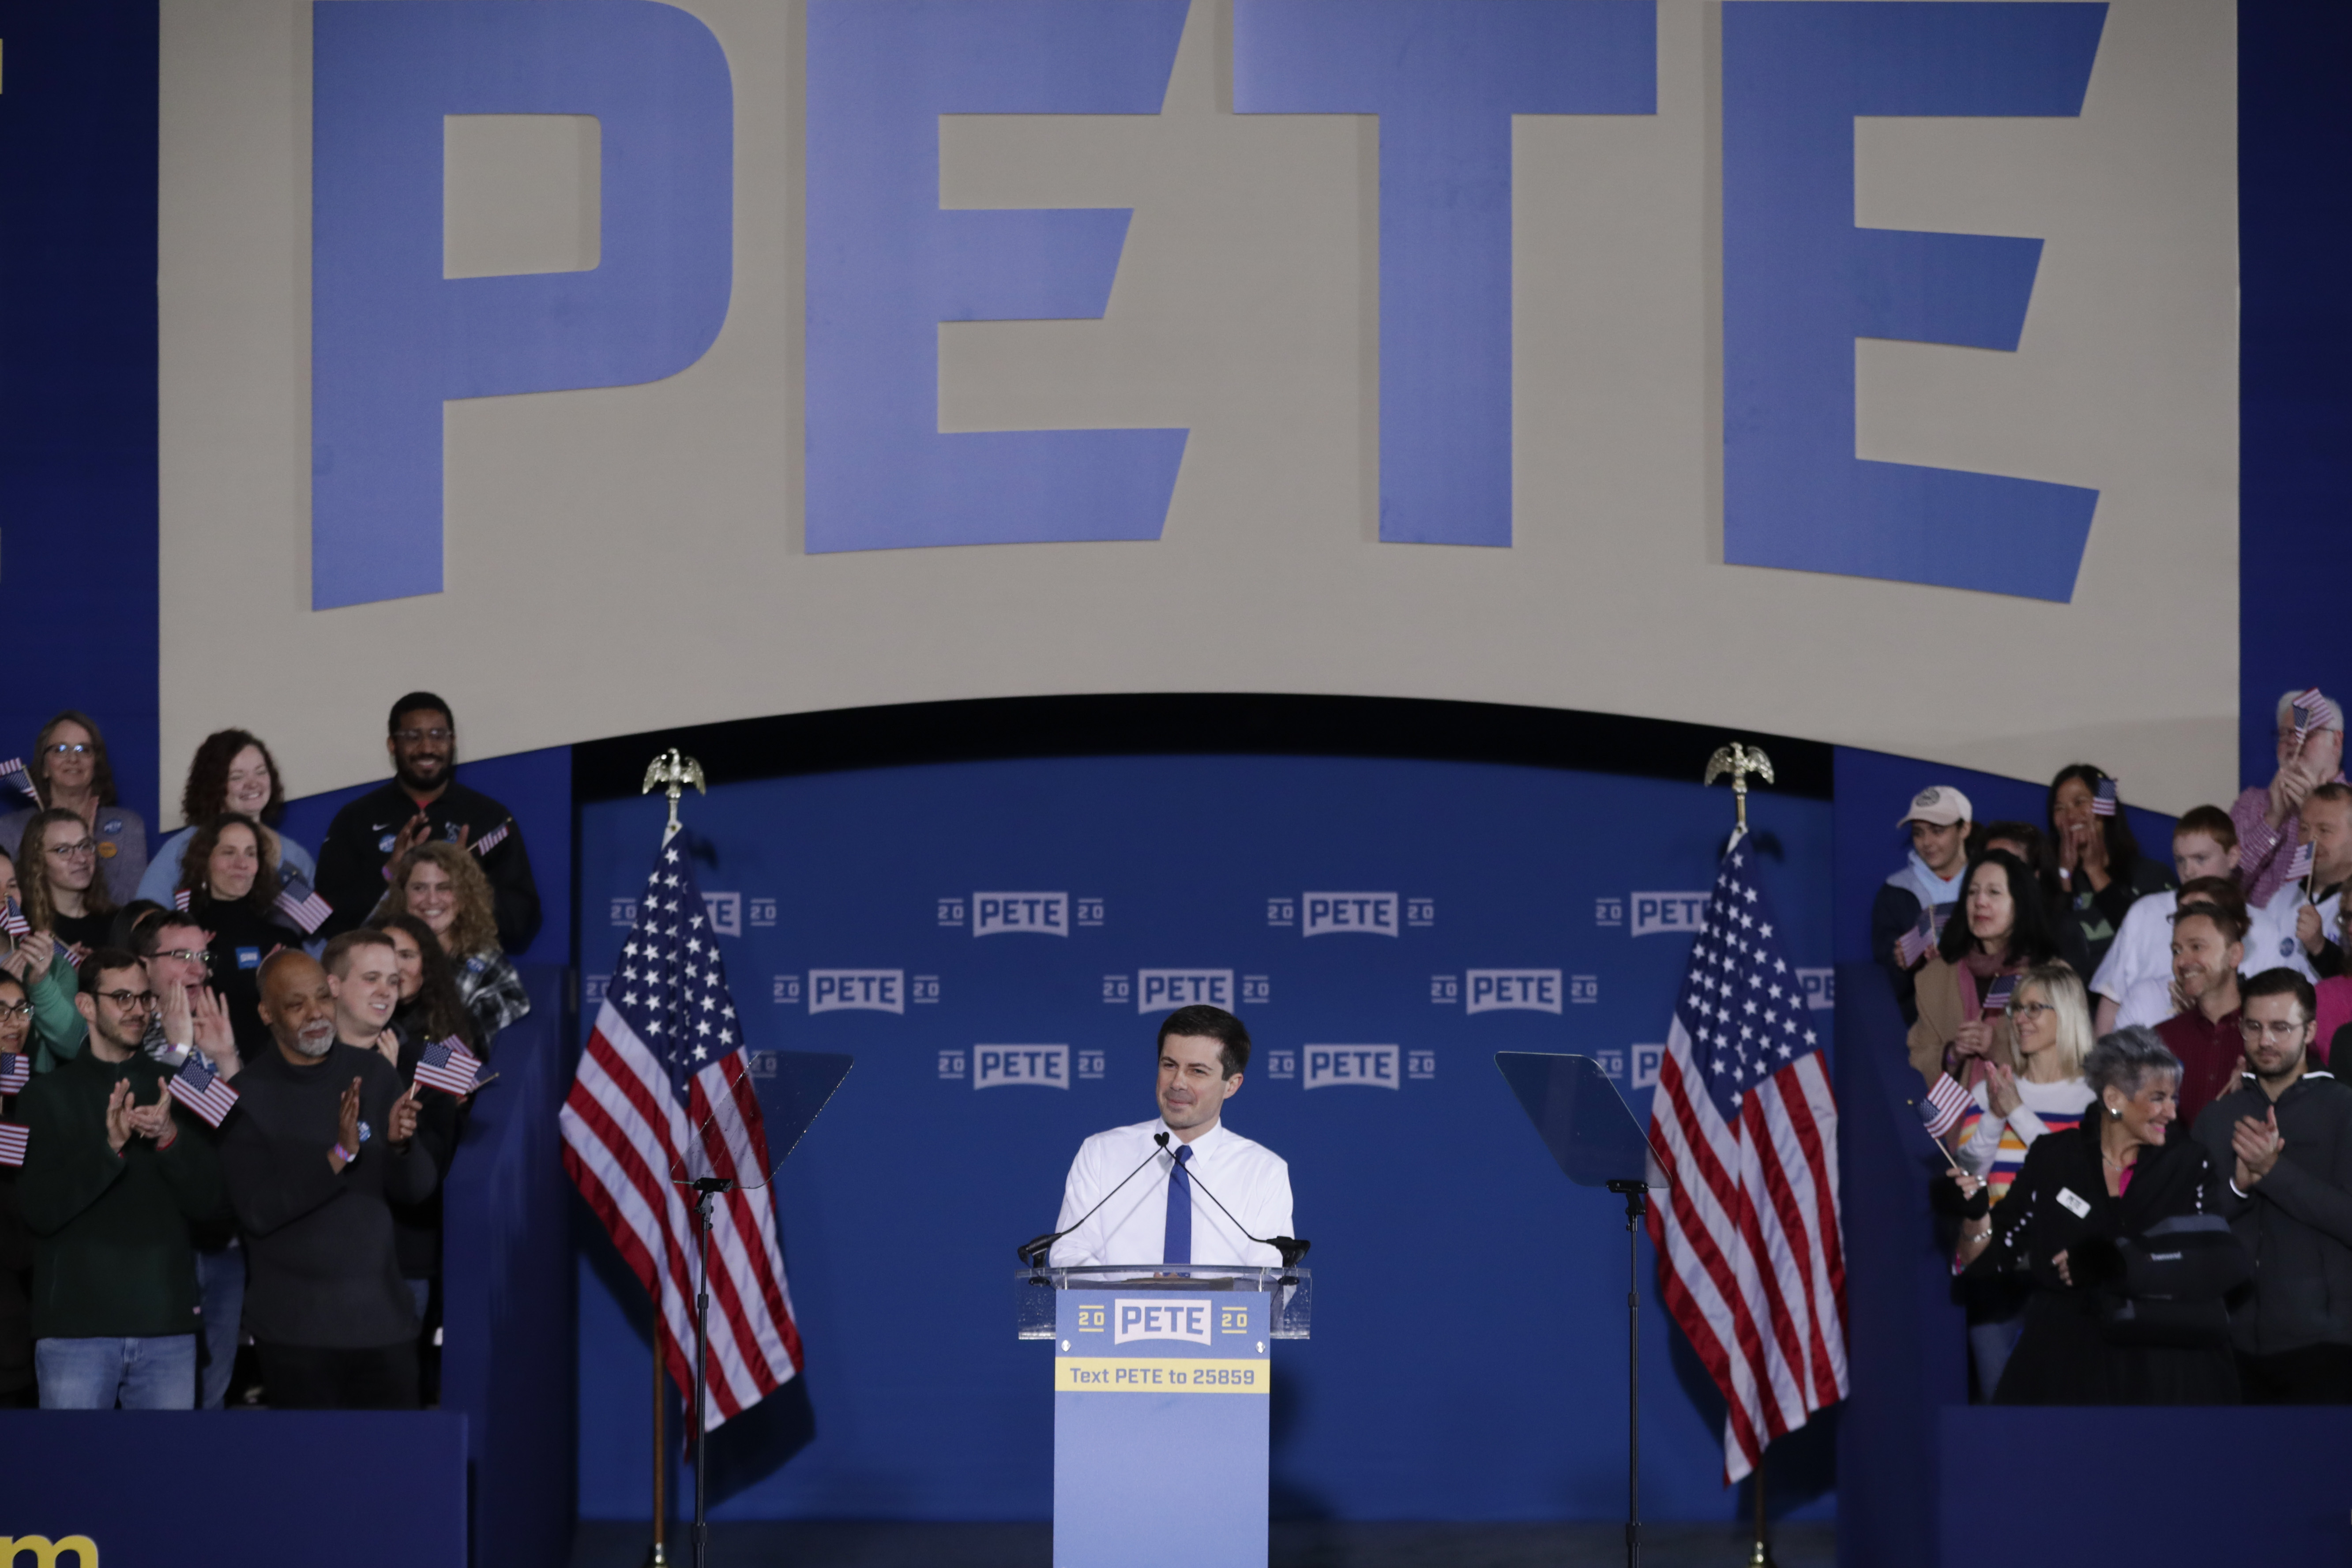 Pete Buttigieg announces that he will seek the Democratic presidential nomination during a rally in South Bend, Ind., Sunday, April 14, 2019. Buttigieg, 37, is serving his second term as the mayor of South Bend.